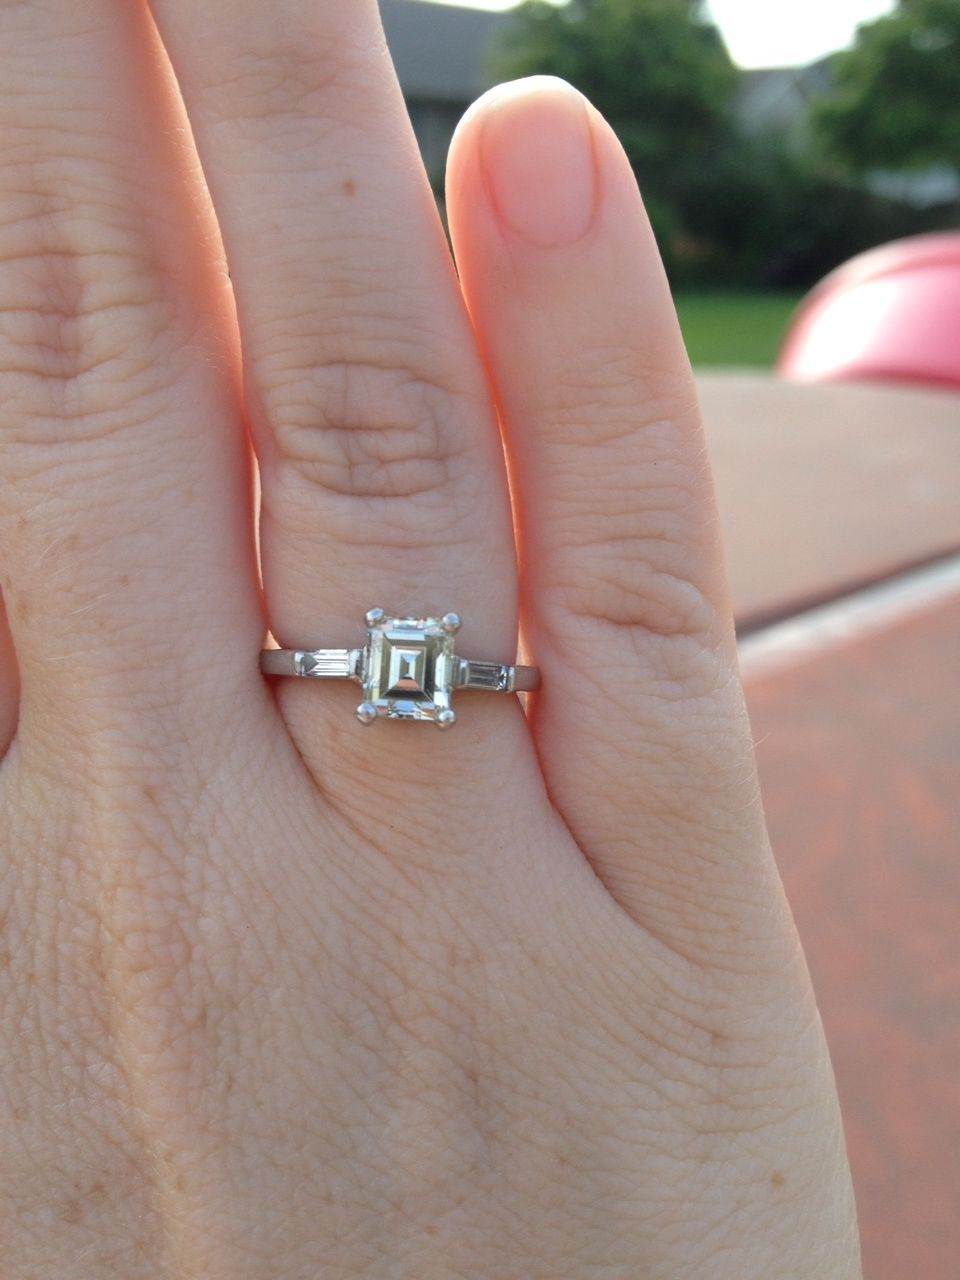 3 4 Carat Emerald Cut Diamond Ring Ring Rings Emerald Cut